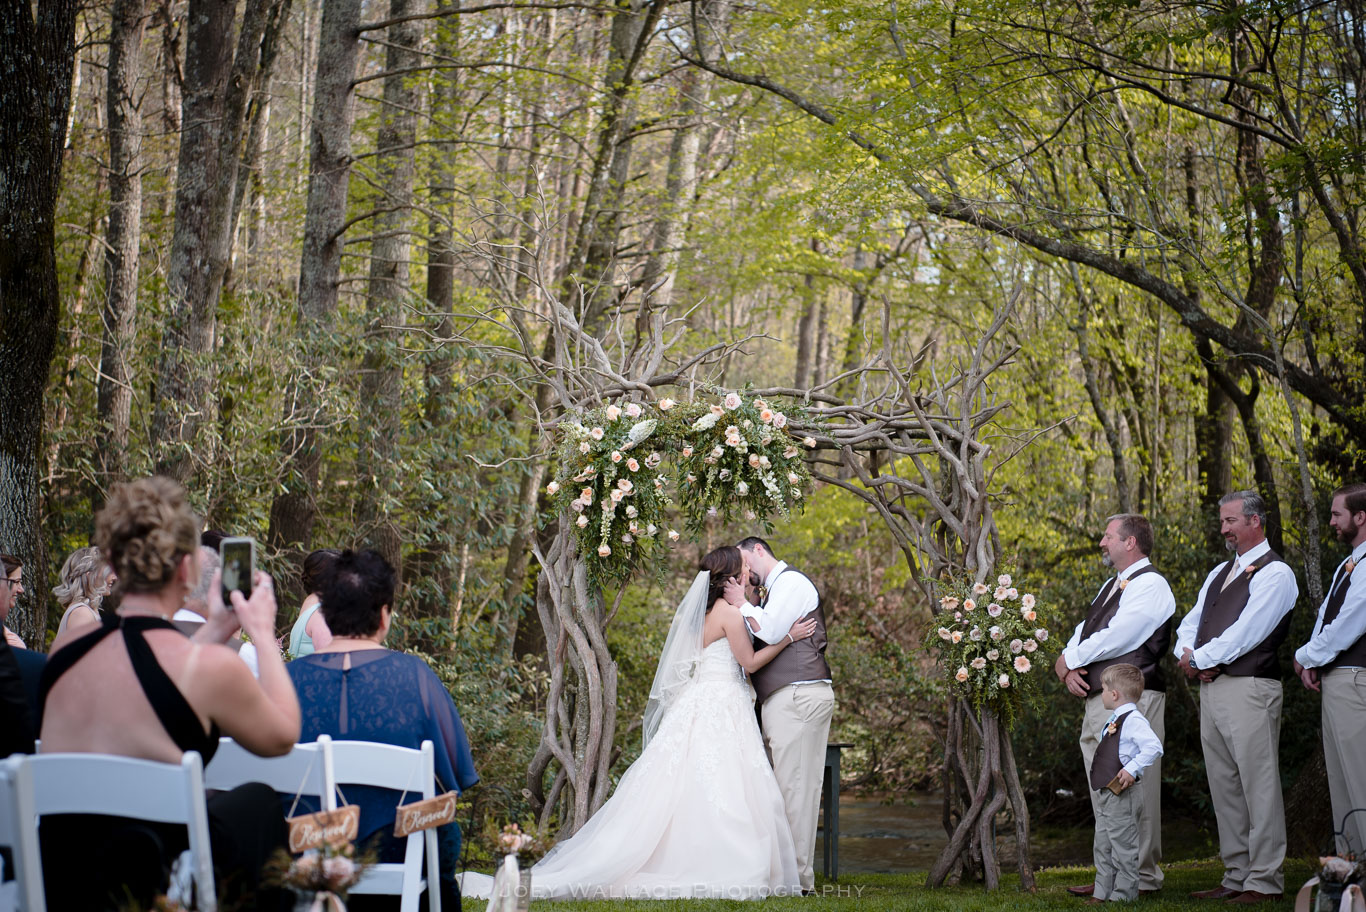 Wedding Ceremony at the Willow Creek Farm in Georgia